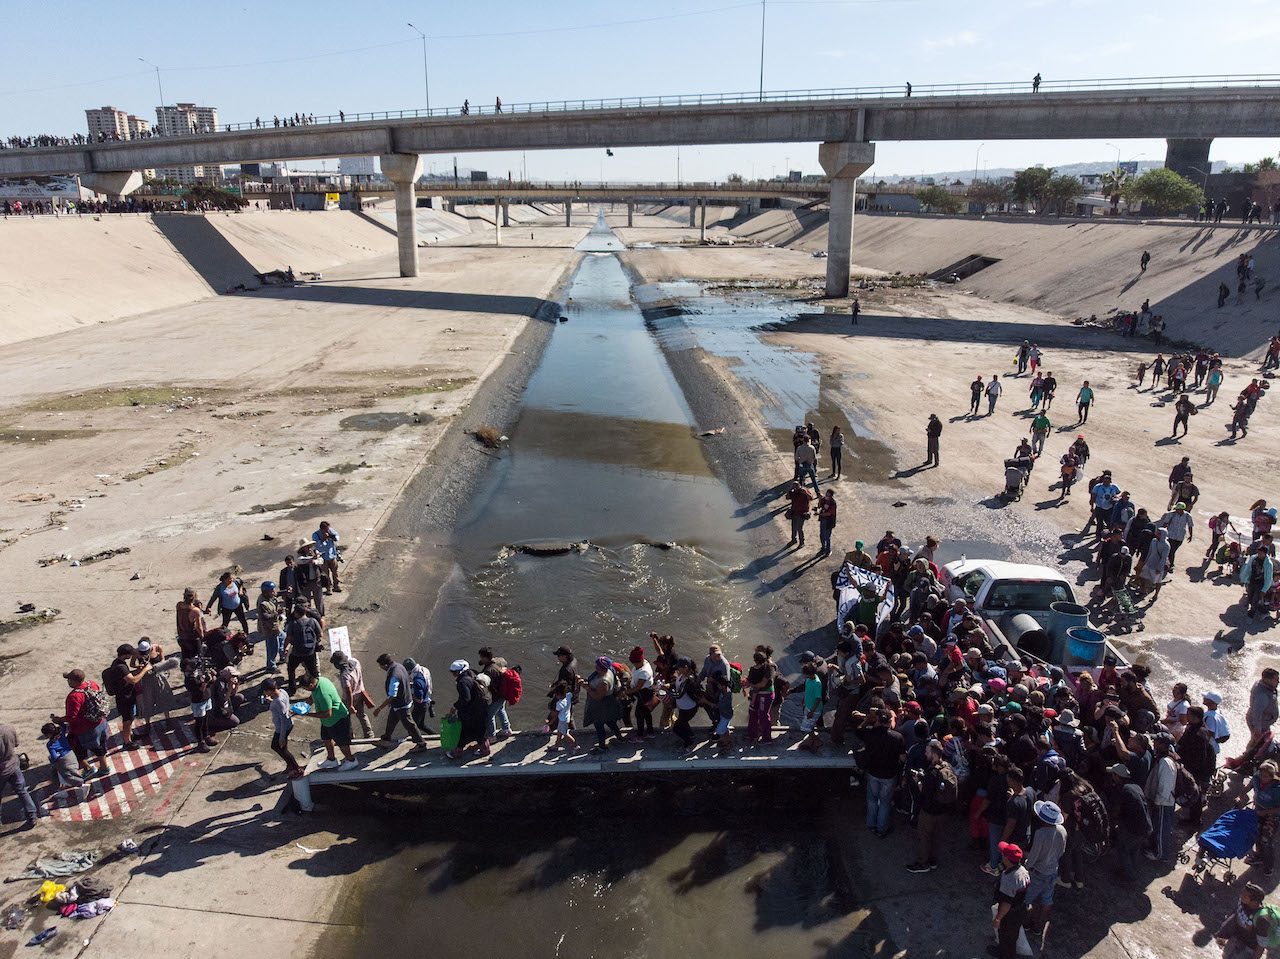 <div class='meta'><div class='origin-logo' data-origin='Creative Content'></div><span class='caption-text' data-credit='Guillermo Arias/AFP/Getty Images'>A group of Central American migrants crosses the almost-dry riverbed of the Tijuana River in an attempt to get to El Chaparral port of entry in Tijuana.</span></div>